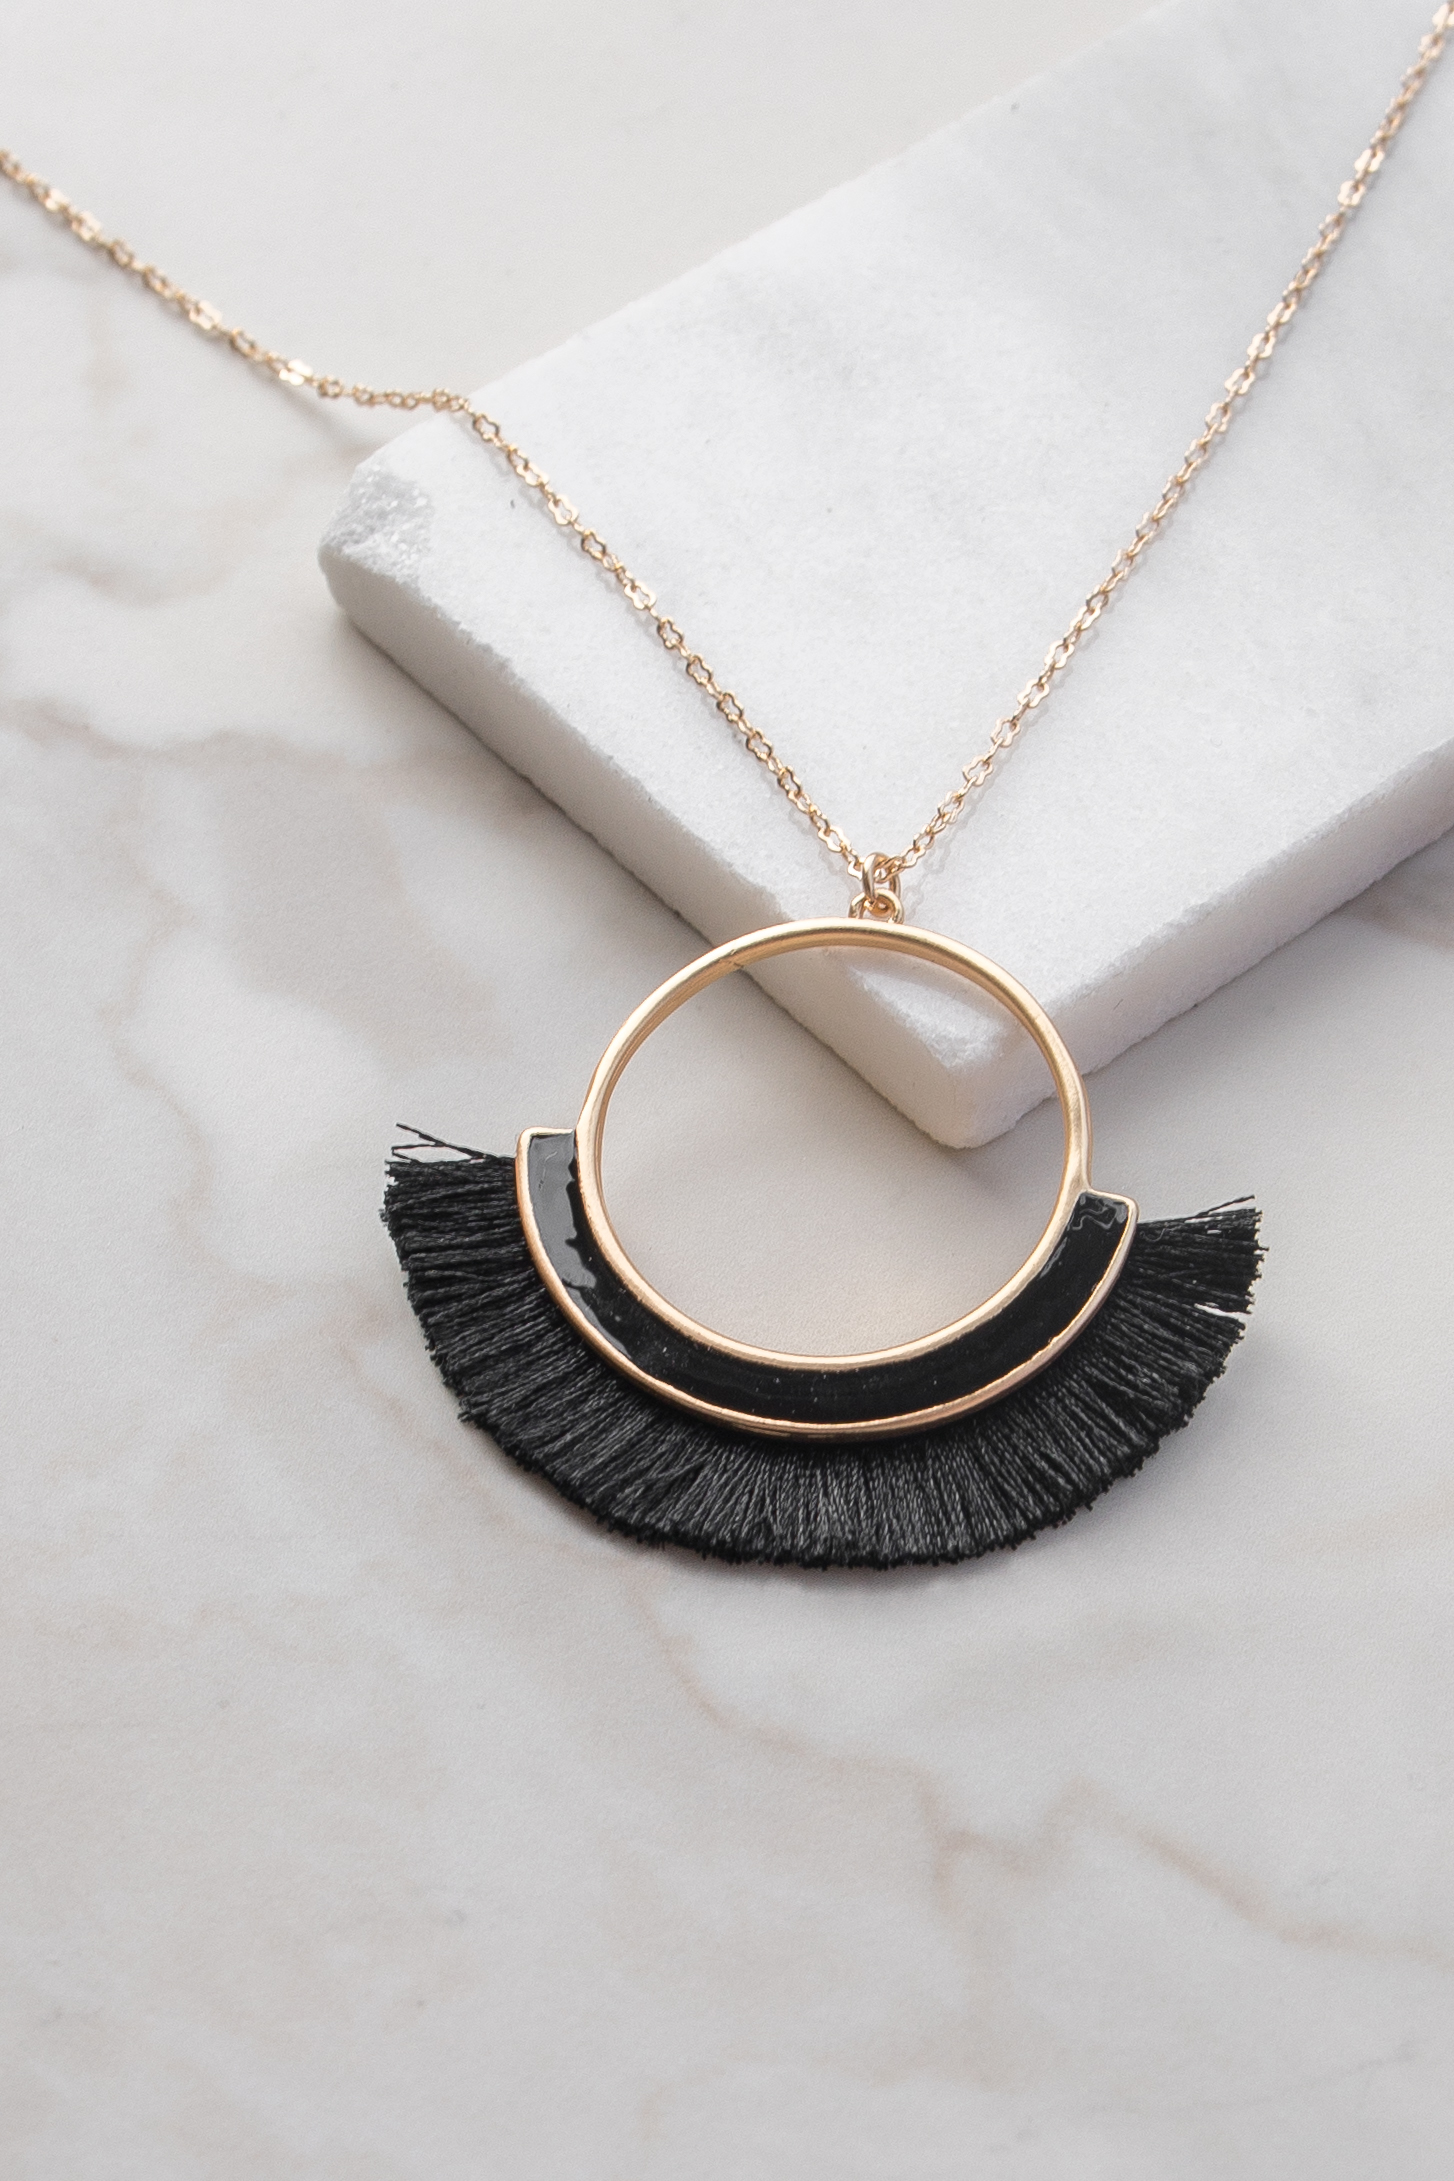 Gold Circle Charm Long Necklace with Black Tassel Detail